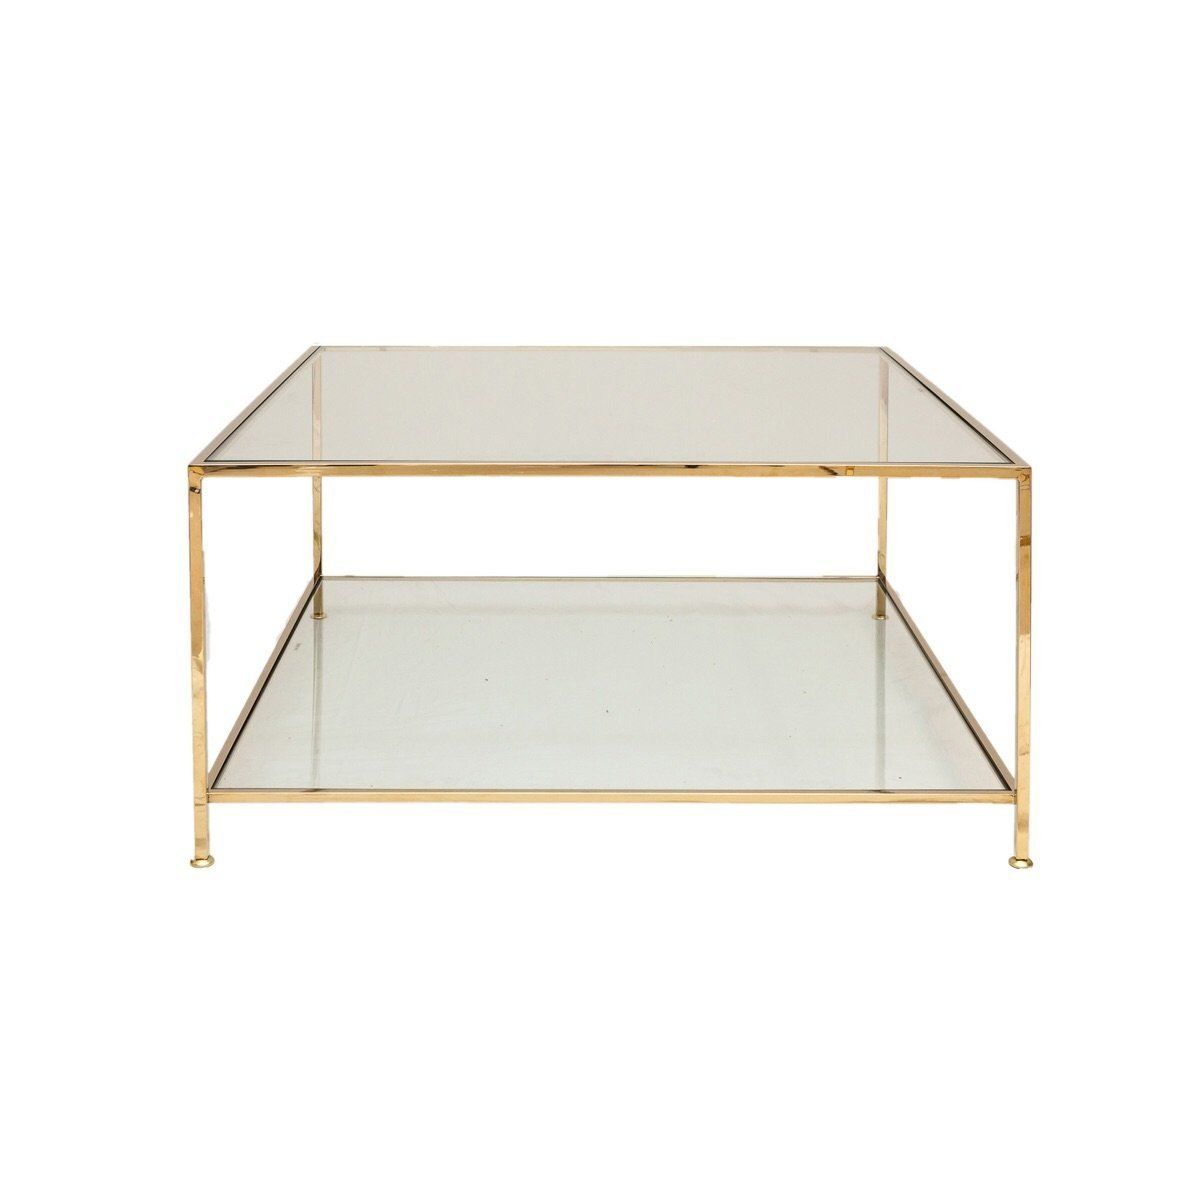 Ruth Joanna Big Square Table In Brass Square Glass Coffee Table Square Tables Tempered Glass Table Top [ 1200 x 1200 Pixel ]